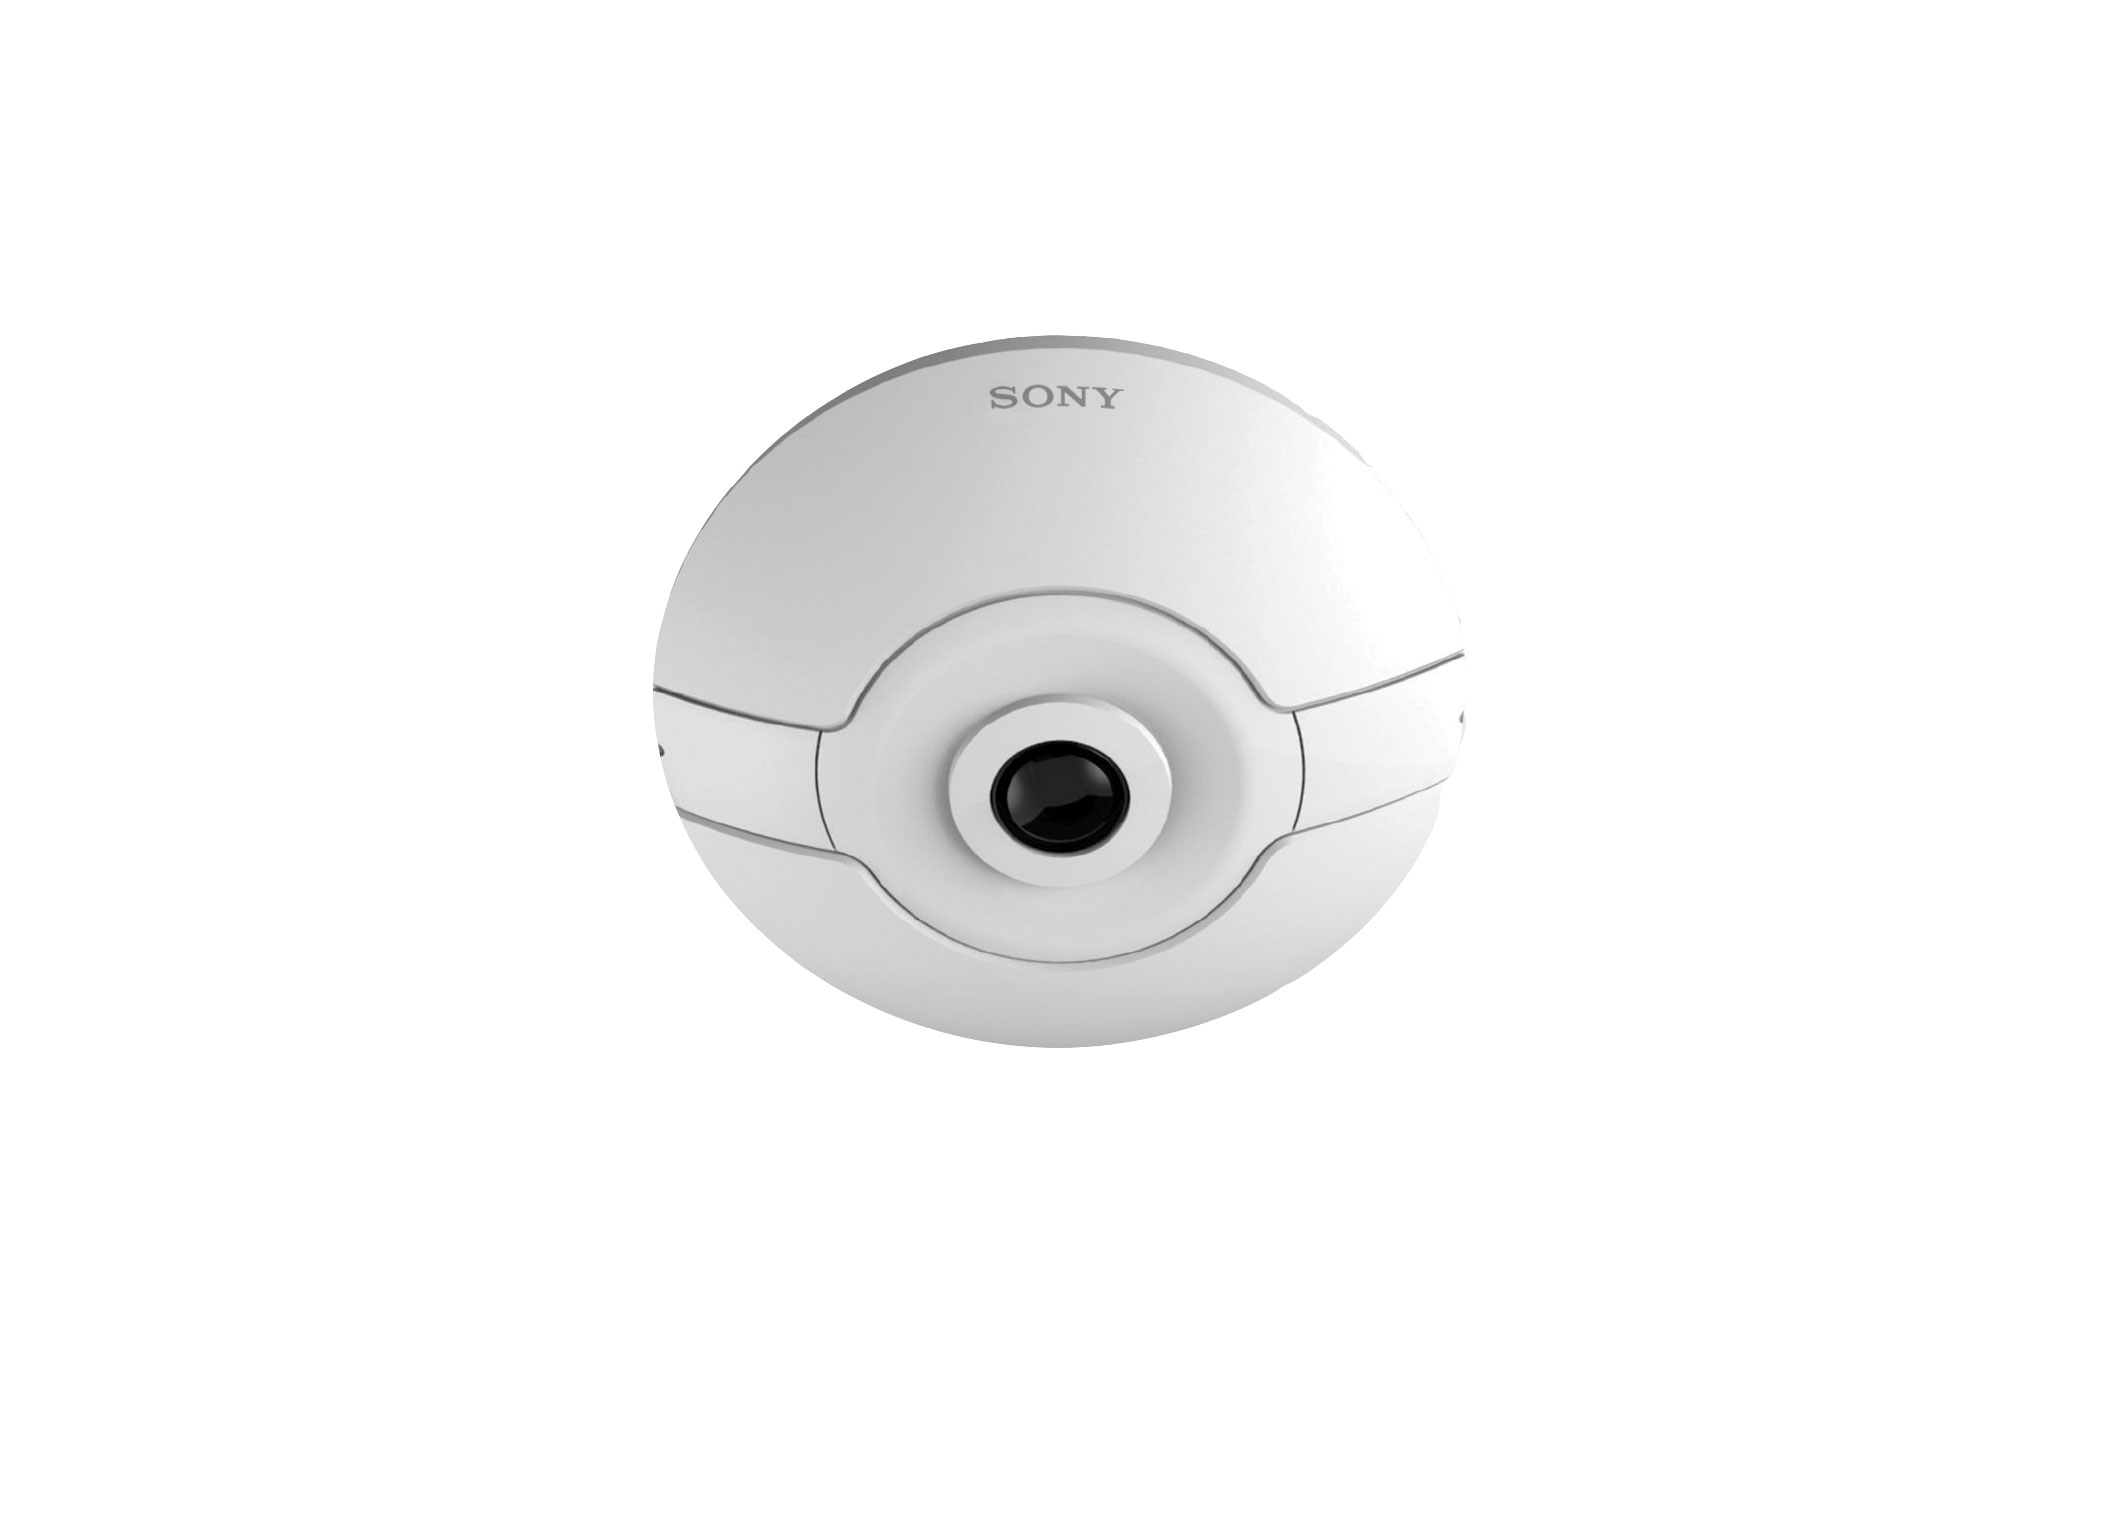 Sony's SNC-HMX70 IP Network Security Camera